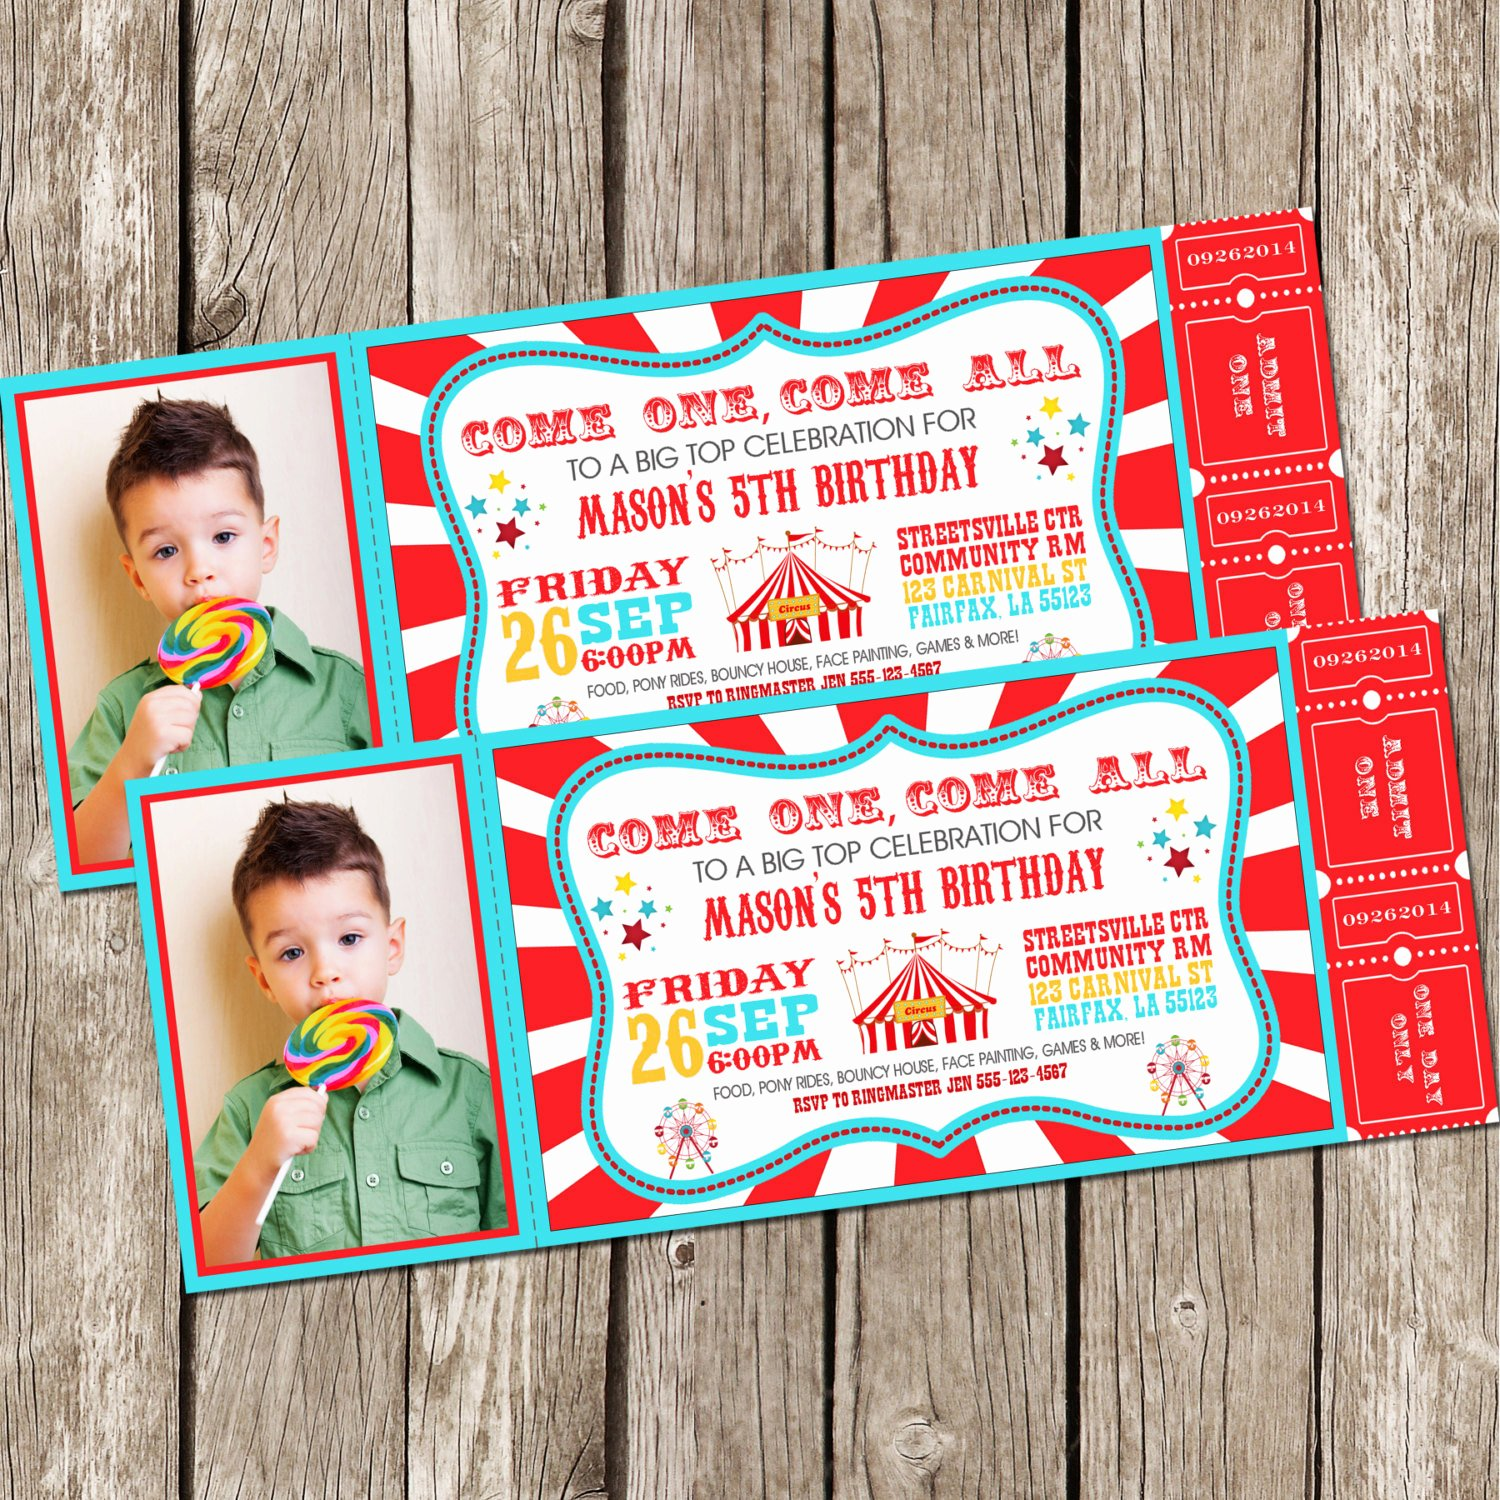 Carnival Birthday Party Invitations Inspirational Vintage Circus Carnival Invitation Ticket Invitation